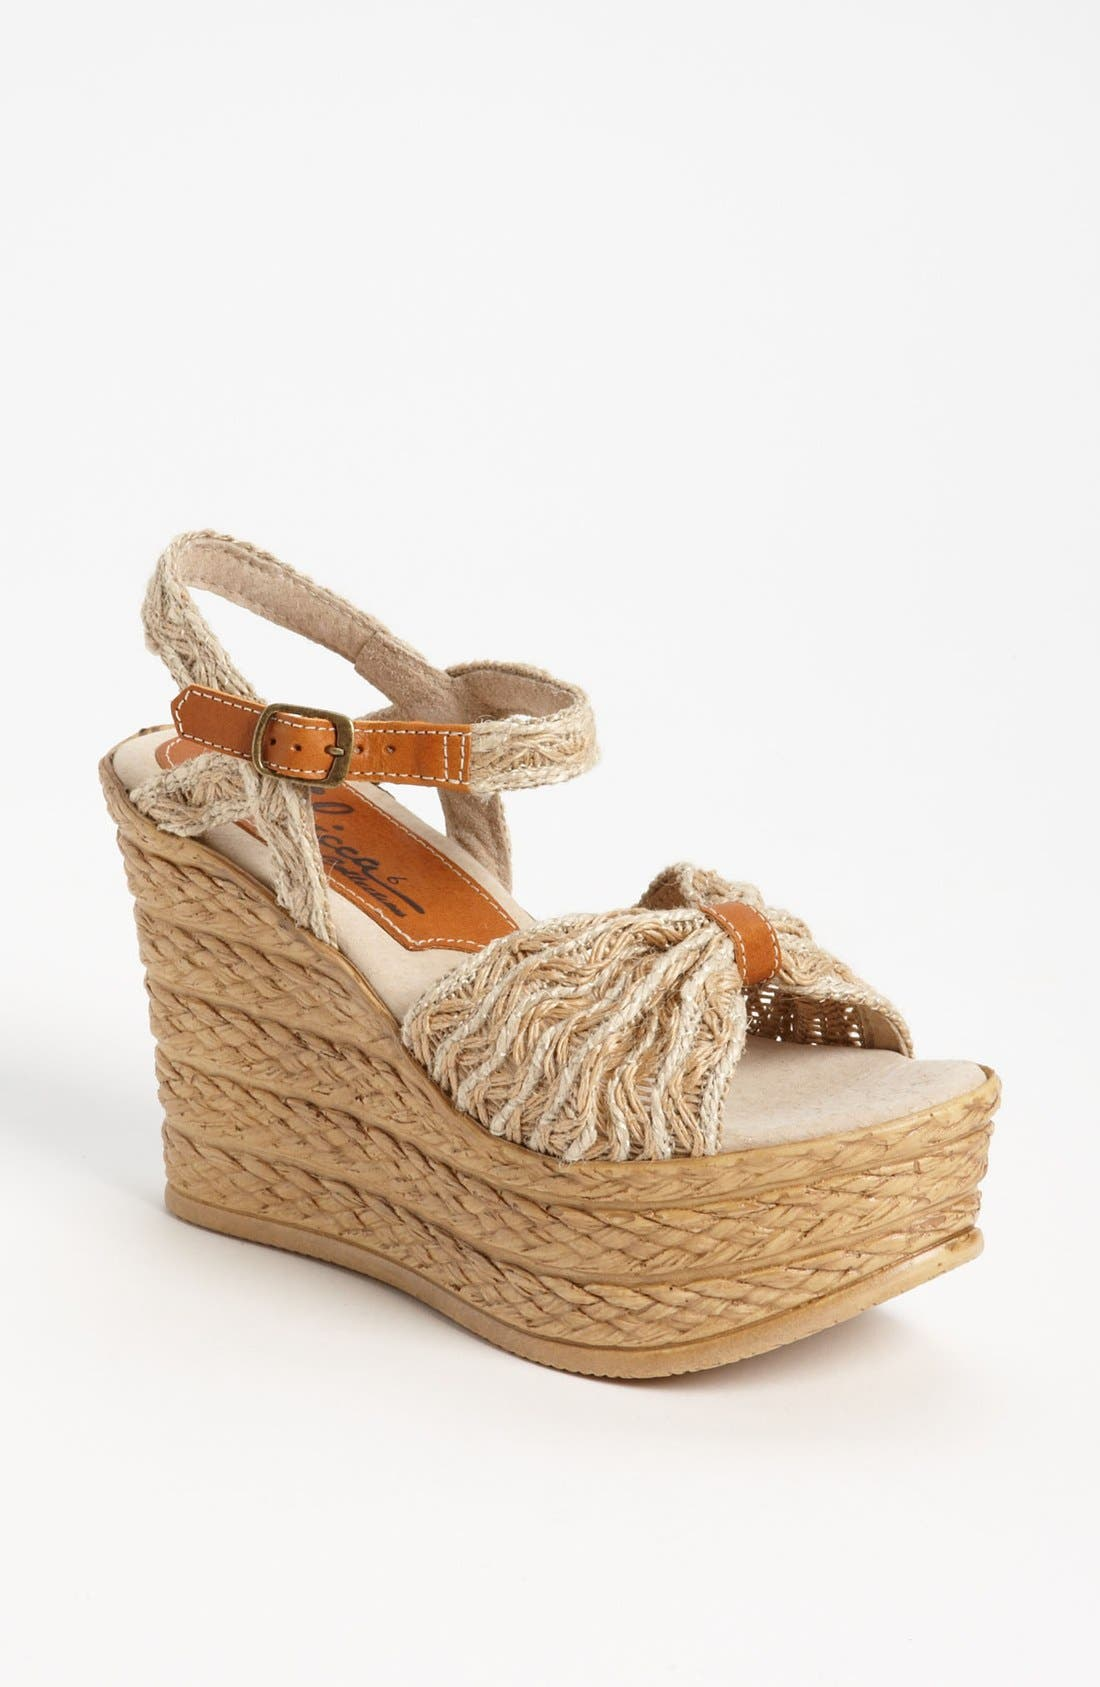 Main Image - Sbicca 'Whimsical' Wedge Sandal